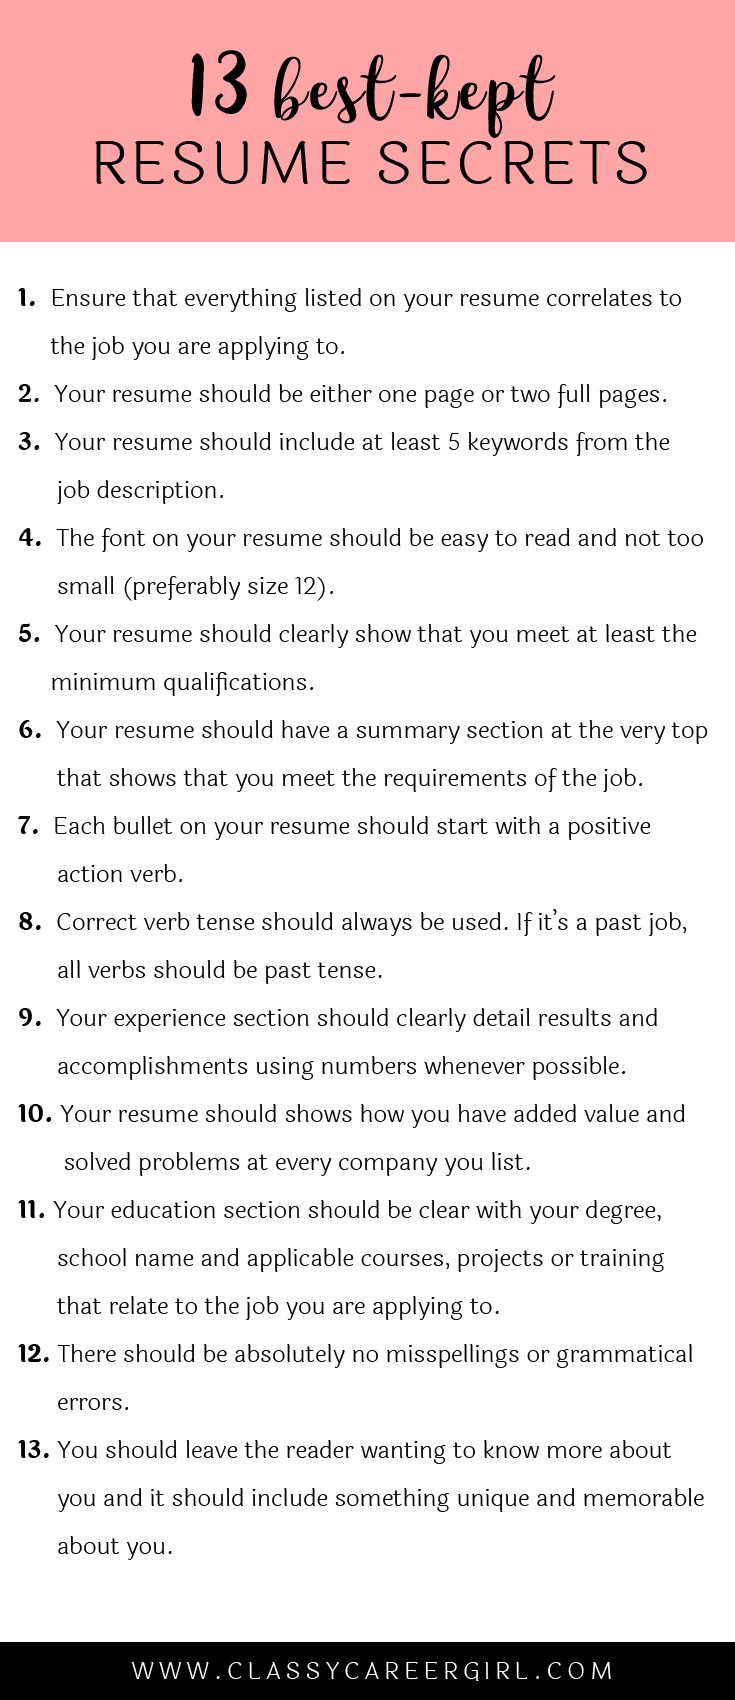 Opposenewapstandardsus  Picturesque  Ideas About Resume On Pinterest  Cv Format Resume Cv And  With Handsome Some Hiring Managers Will Toss Your Resume Out If You Dont Know These  With Extraordinary Extracurricular Resume Also Film Crew Resume In Addition Resume For Graduate School Template And Top Resume Writers As Well As Setting Up A Resume Additionally Nursing Student Resume Objective From Pinterestcom With Opposenewapstandardsus  Handsome  Ideas About Resume On Pinterest  Cv Format Resume Cv And  With Extraordinary Some Hiring Managers Will Toss Your Resume Out If You Dont Know These  And Picturesque Extracurricular Resume Also Film Crew Resume In Addition Resume For Graduate School Template From Pinterestcom